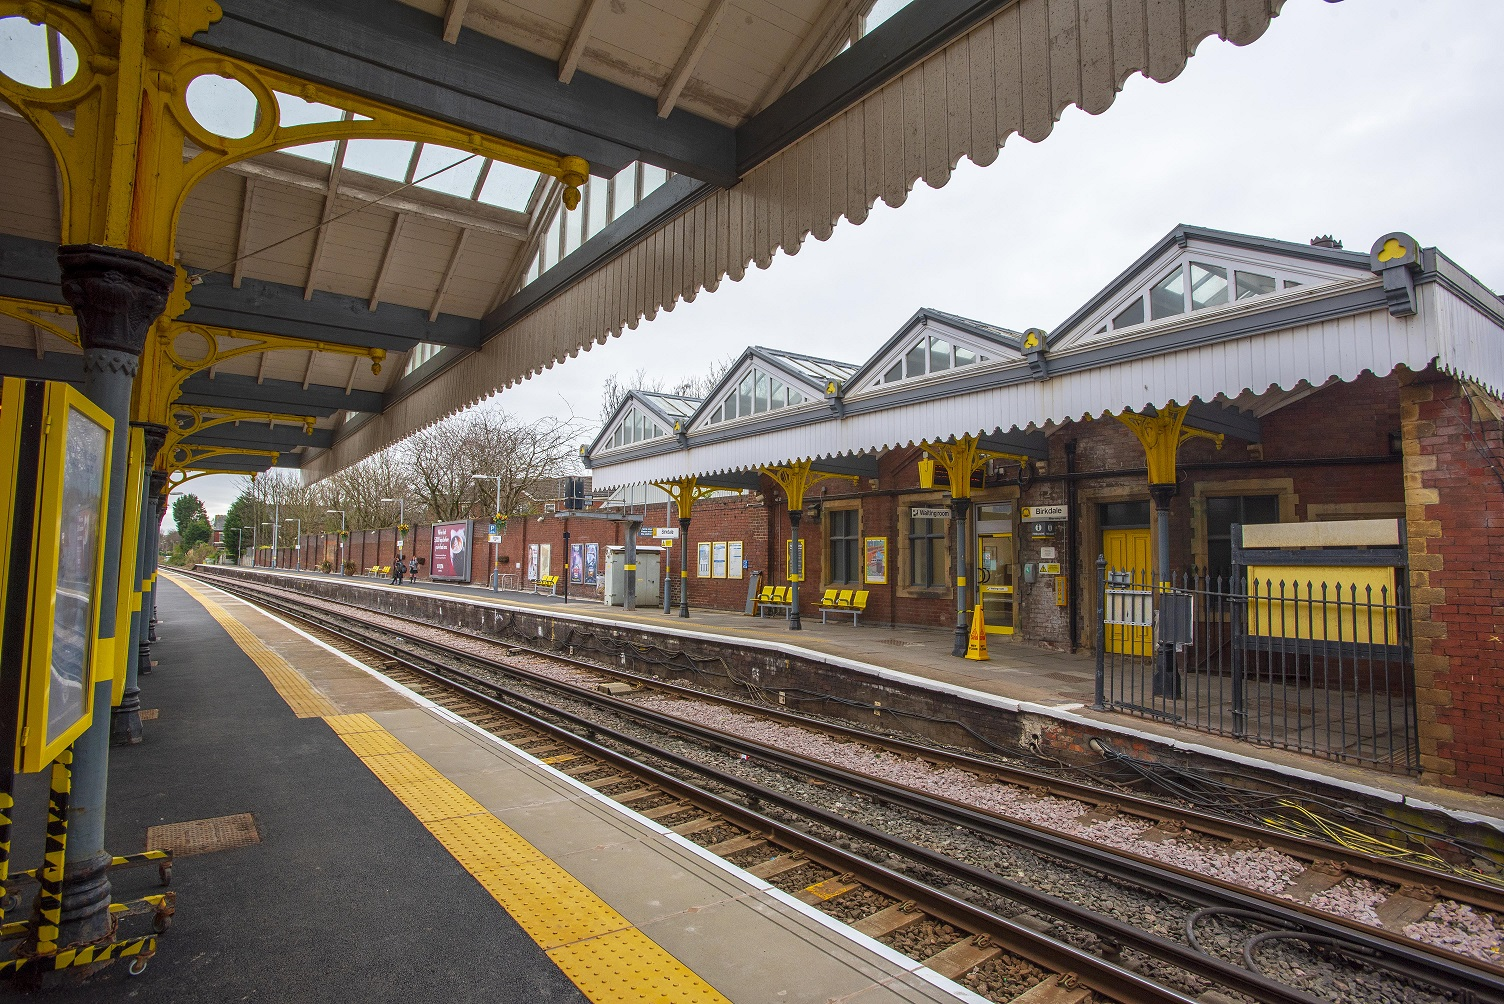 Changes to Merseyrail services from Monday 18 May